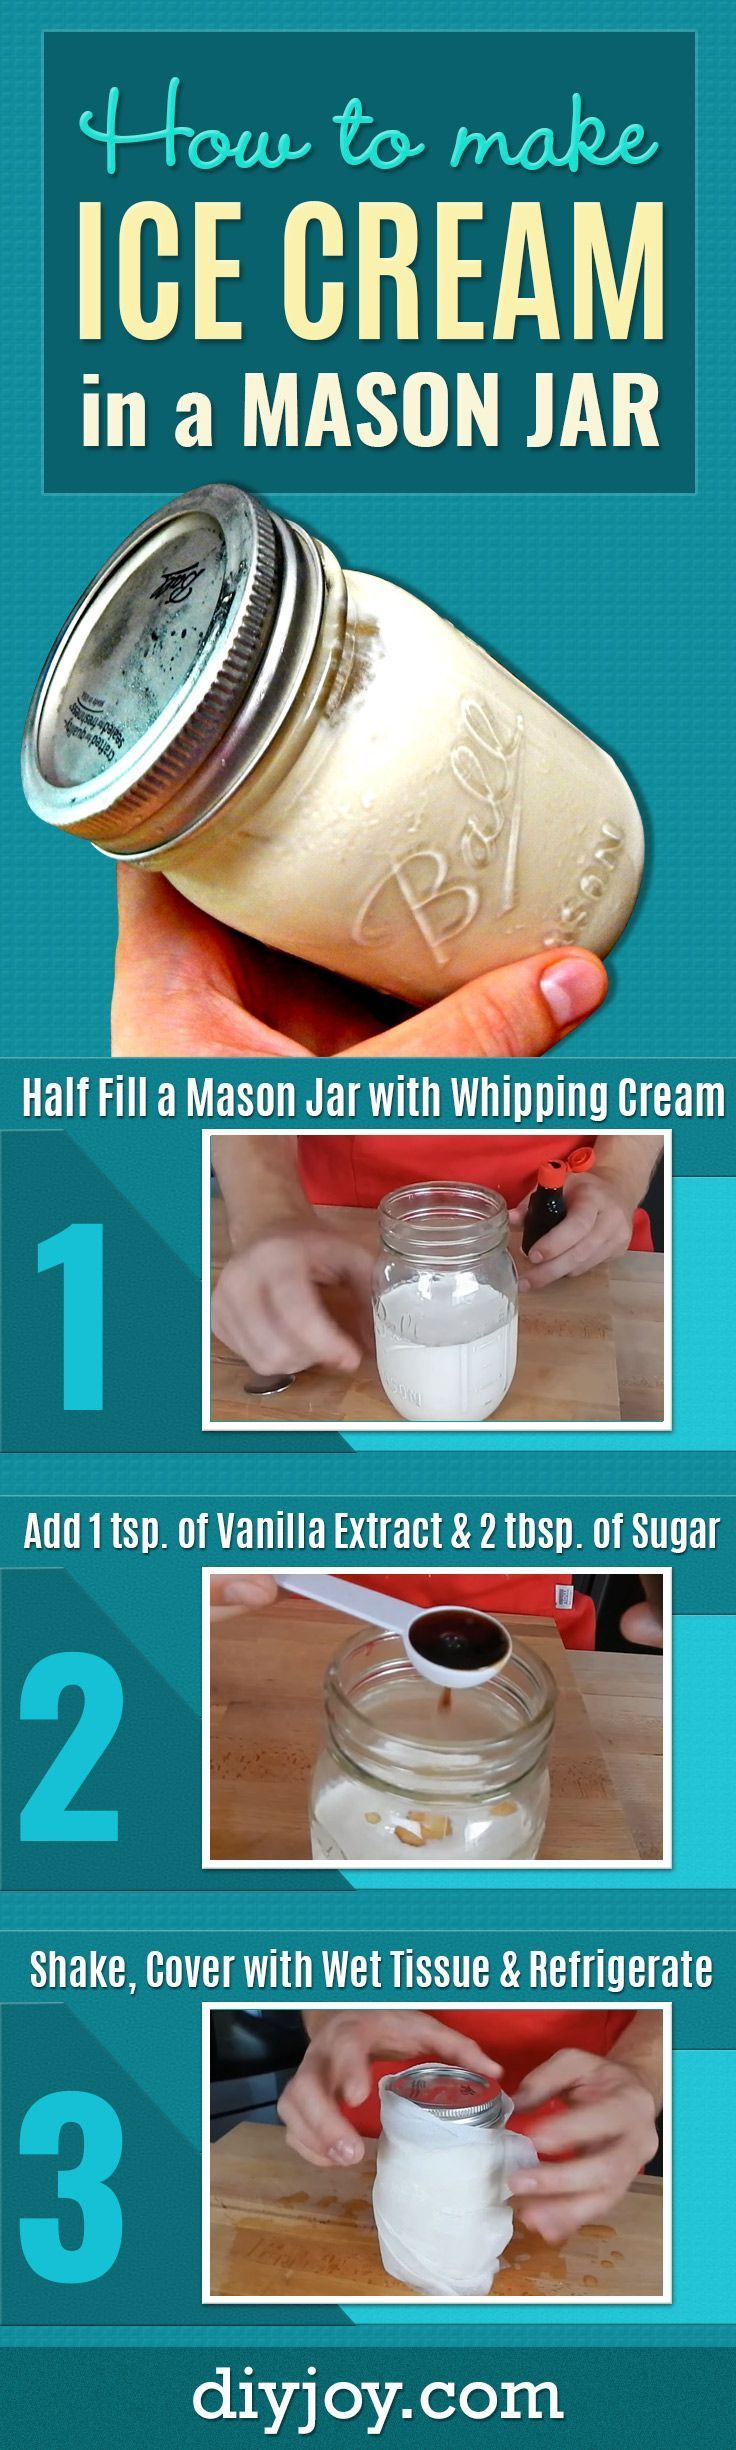 DIY Ice Cream - How To Make Homemade Ice Cream in a Mason Jar - Best Dessert Recipes and Easy Ideas for Desserts